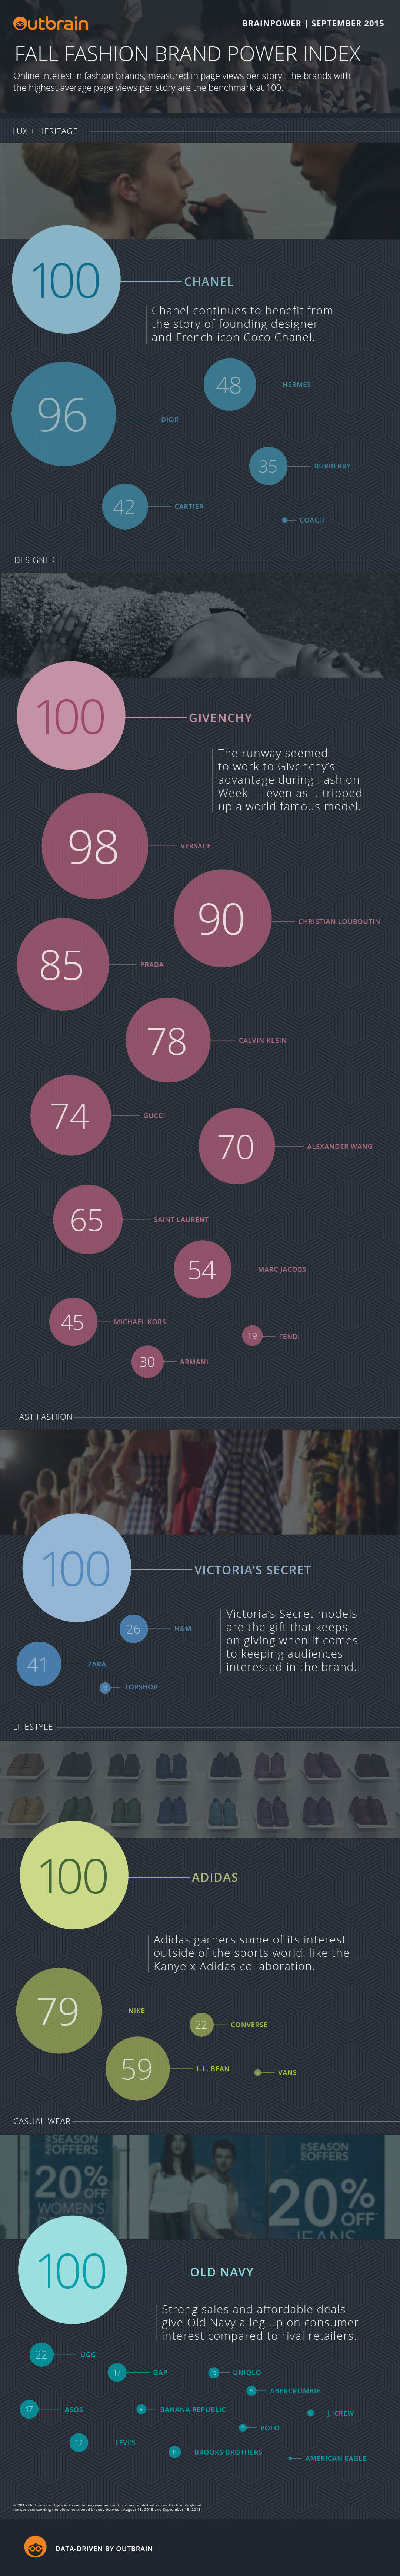 infographic; Fall Fashion Brands Power Index